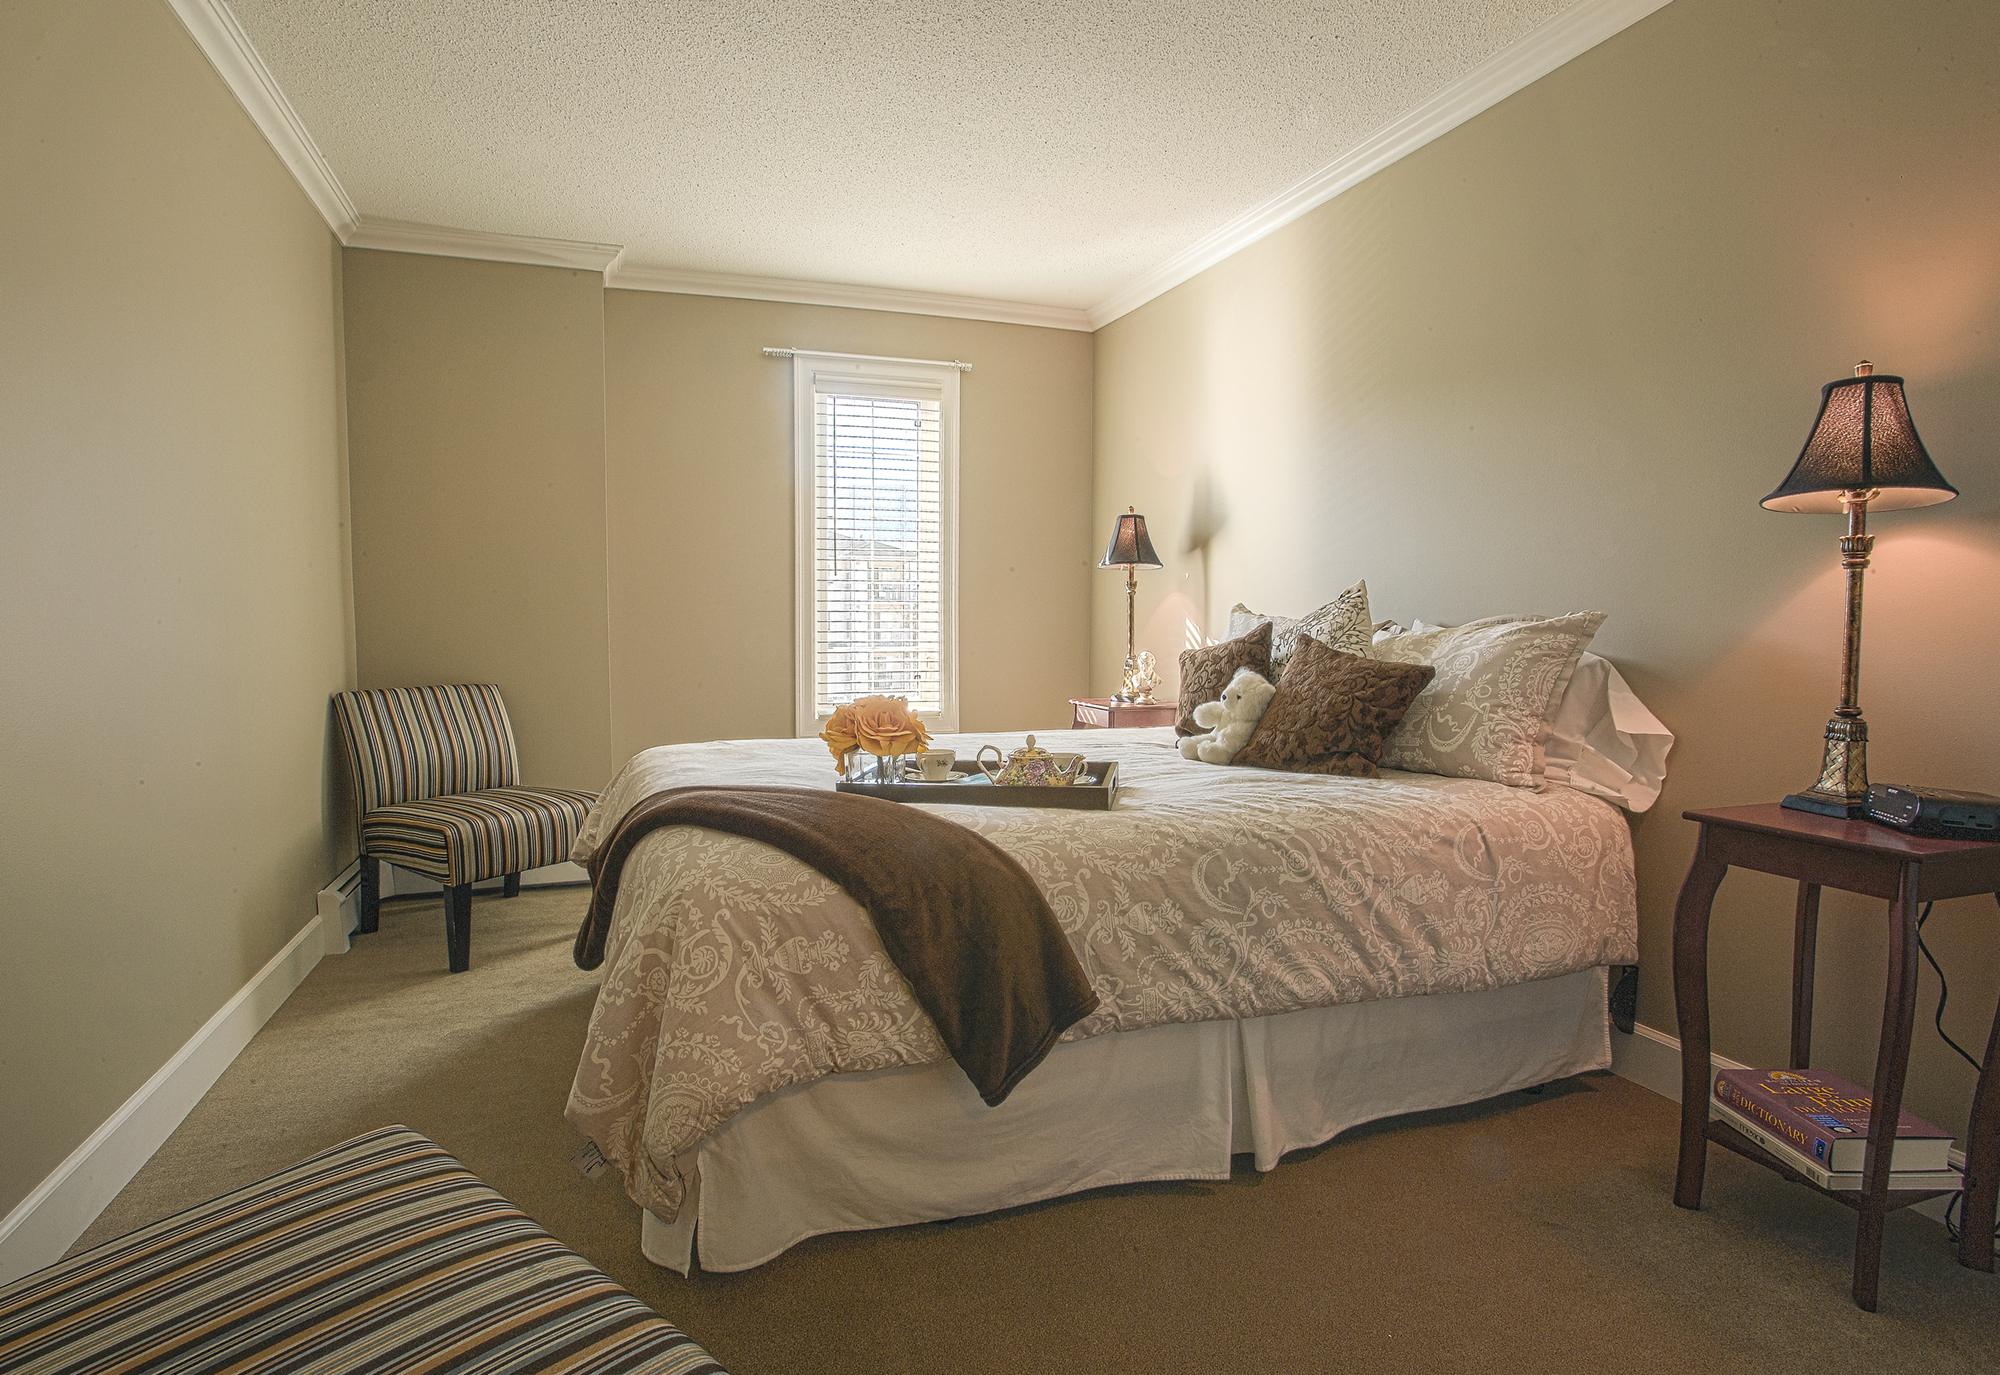 Image of a suite at Cherry Park Retirement Residence in Penticton